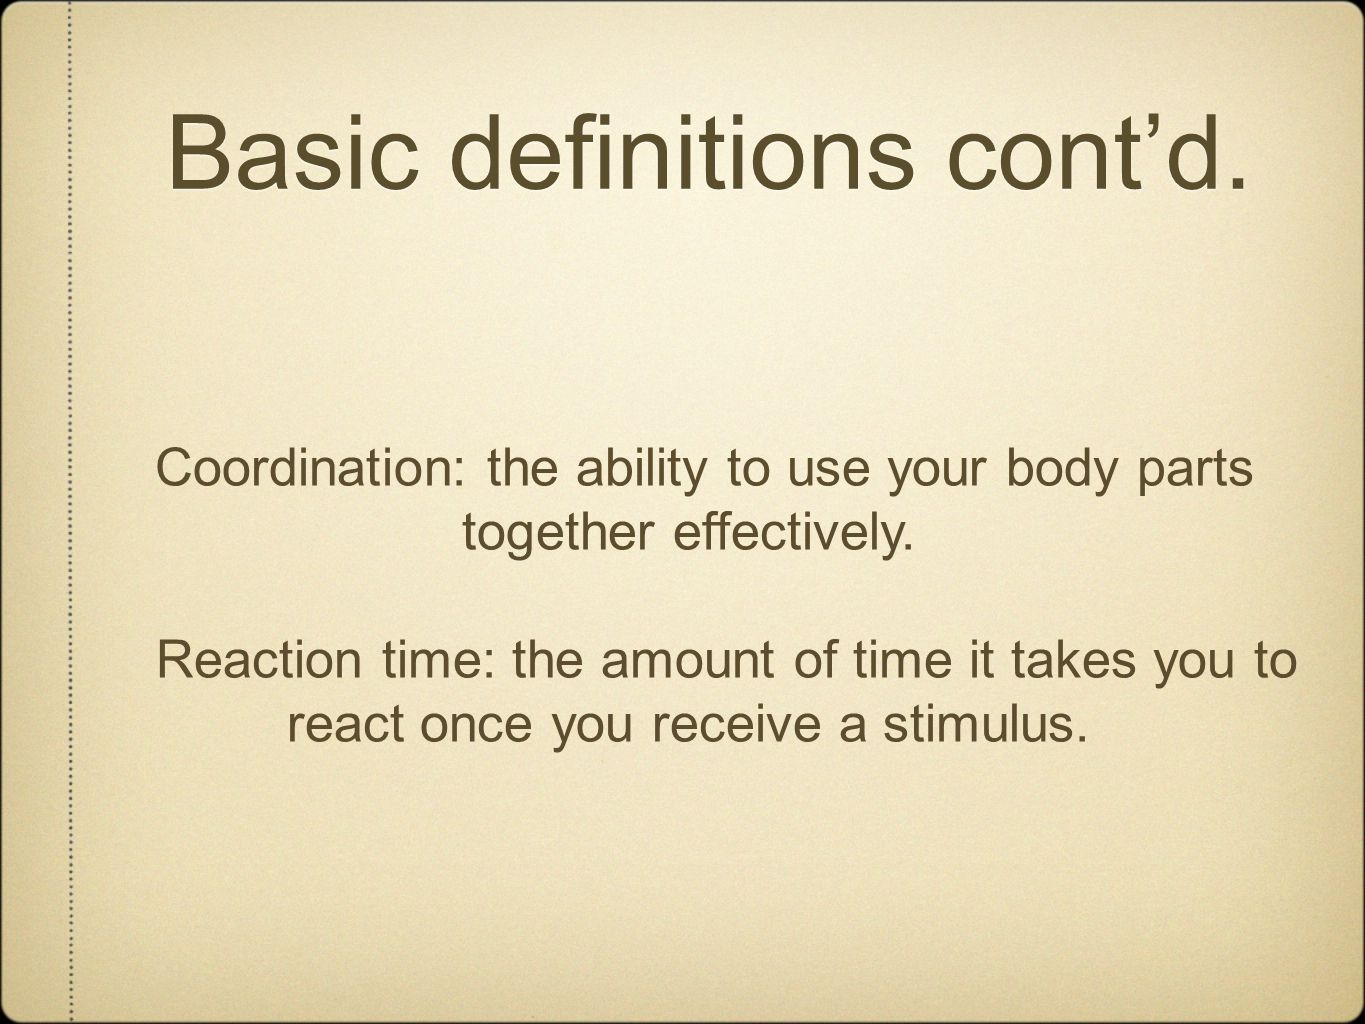 Basic definitions cont'd.